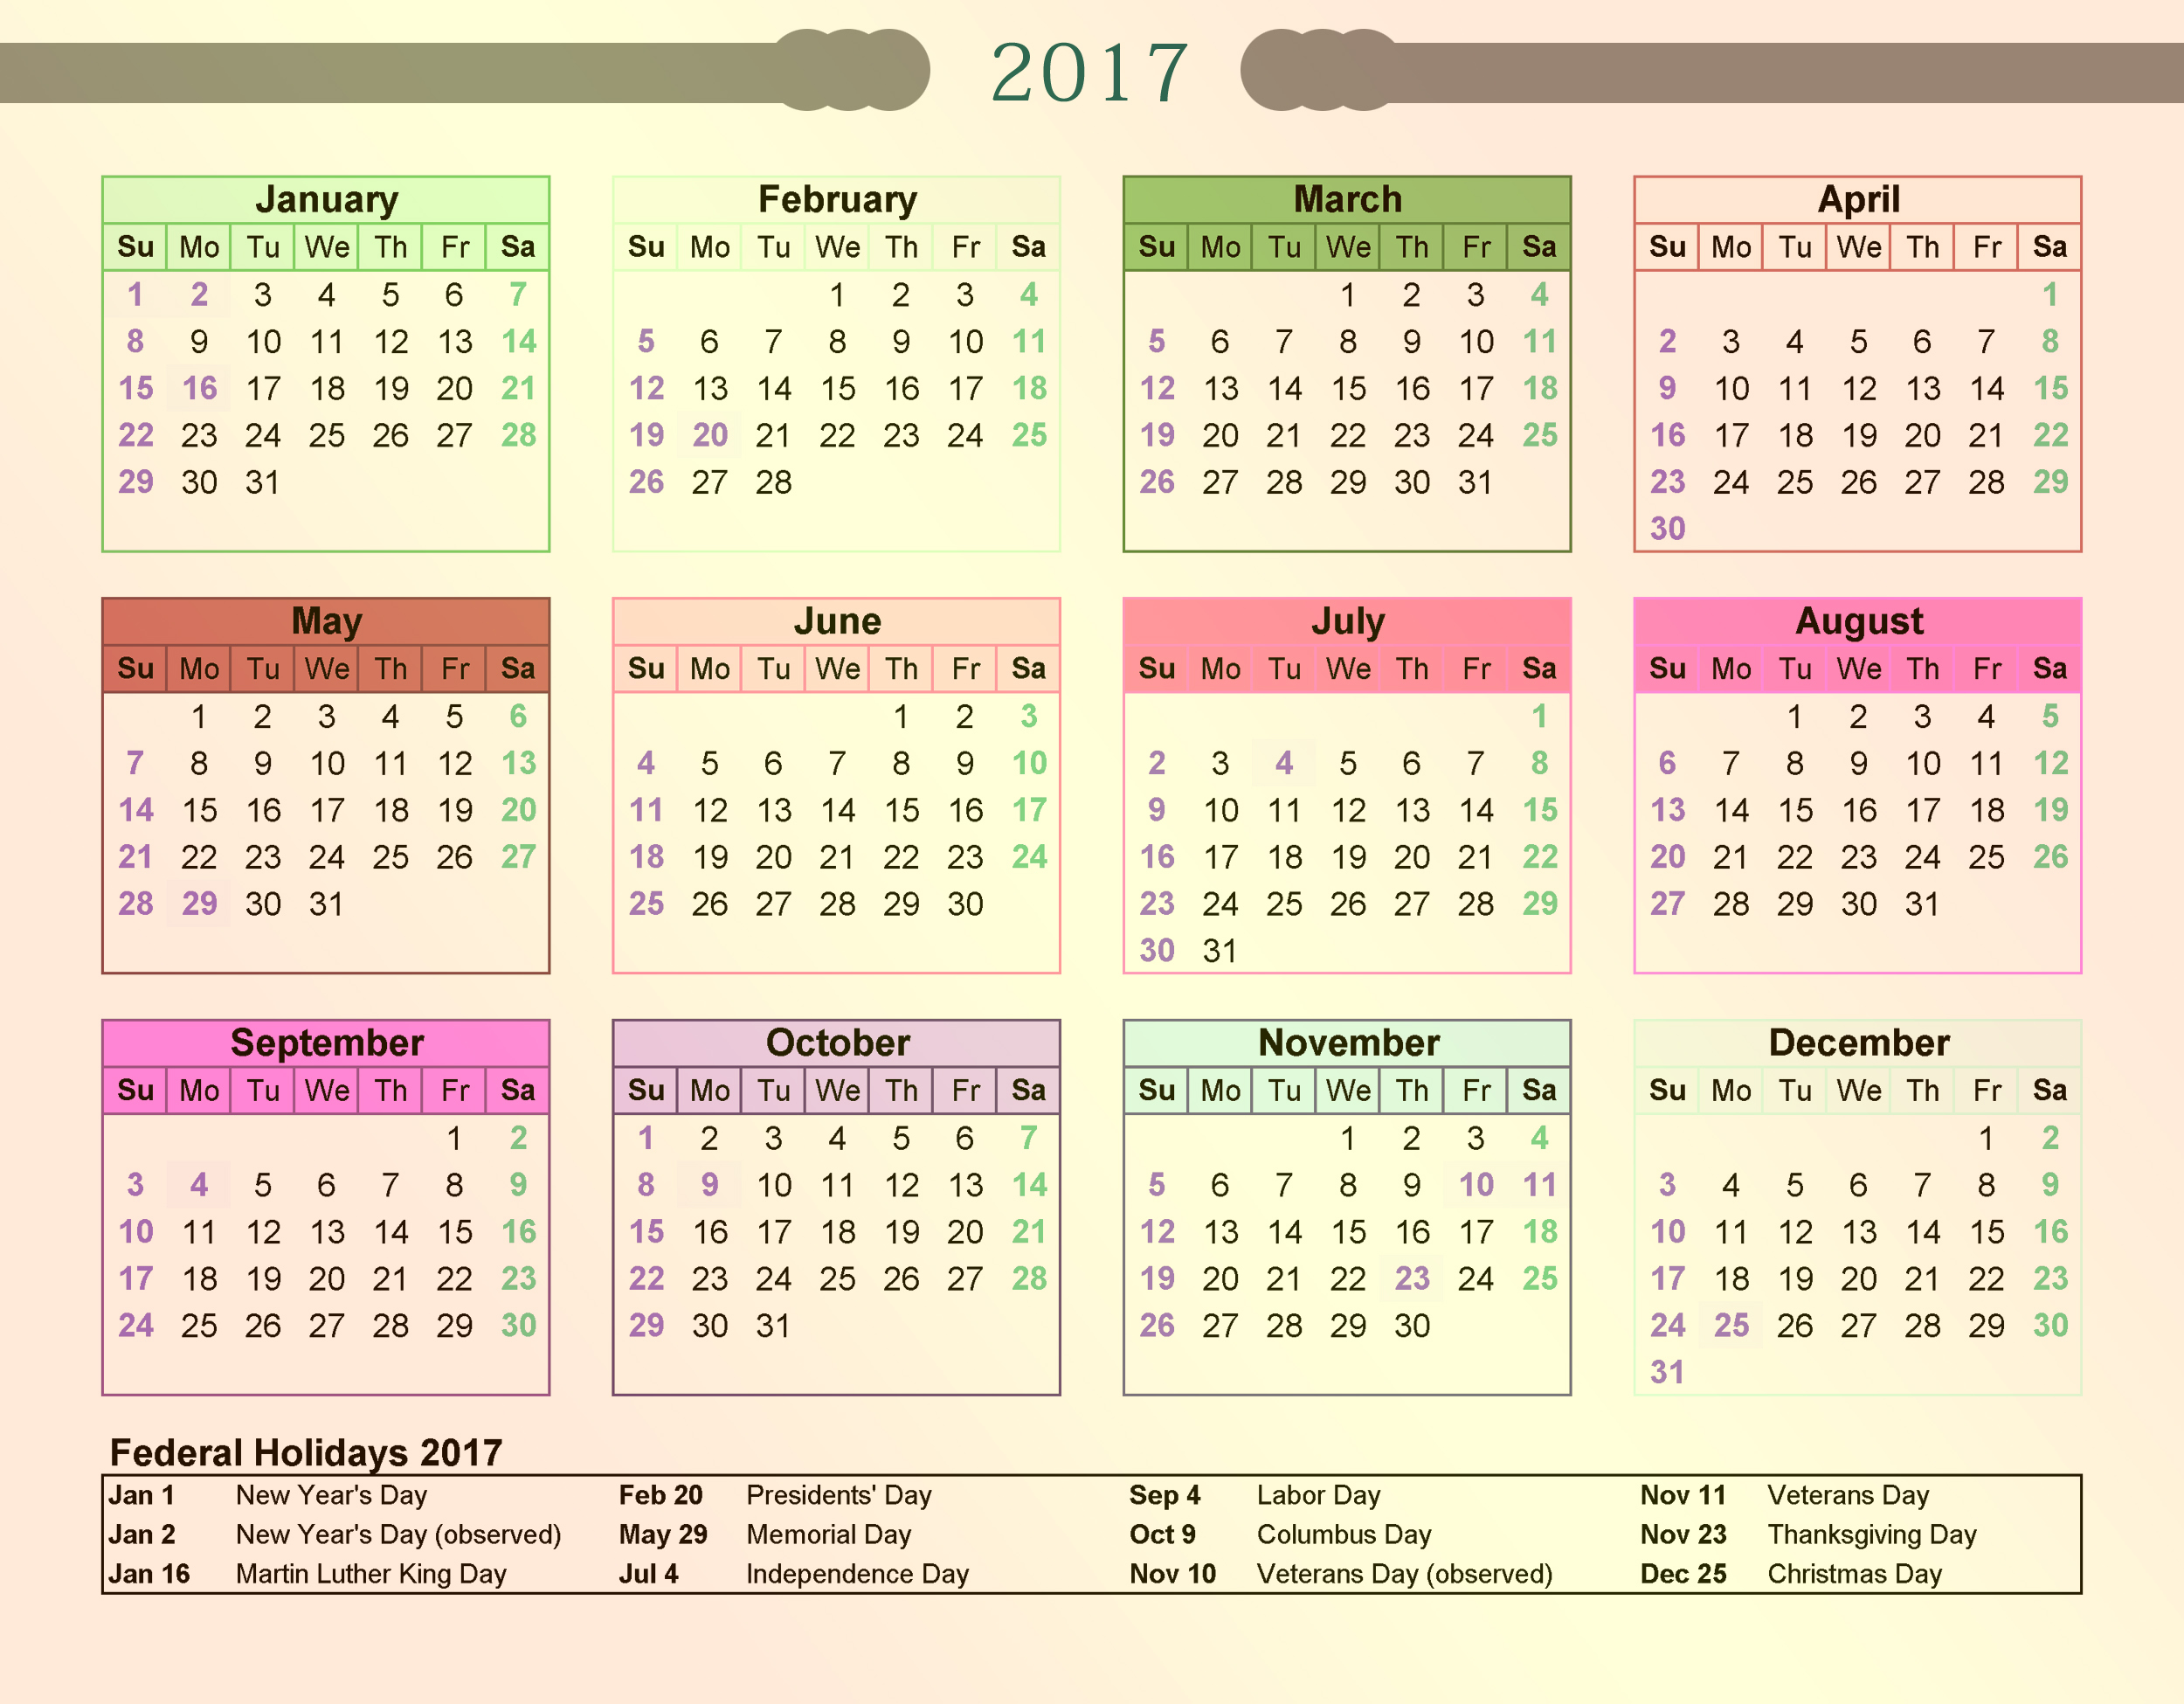 Holiday Calendar Qatar 2016 Calendar For Year 2018 United States Time And Date 2016 Holiday List Printable Calendar Template 2016